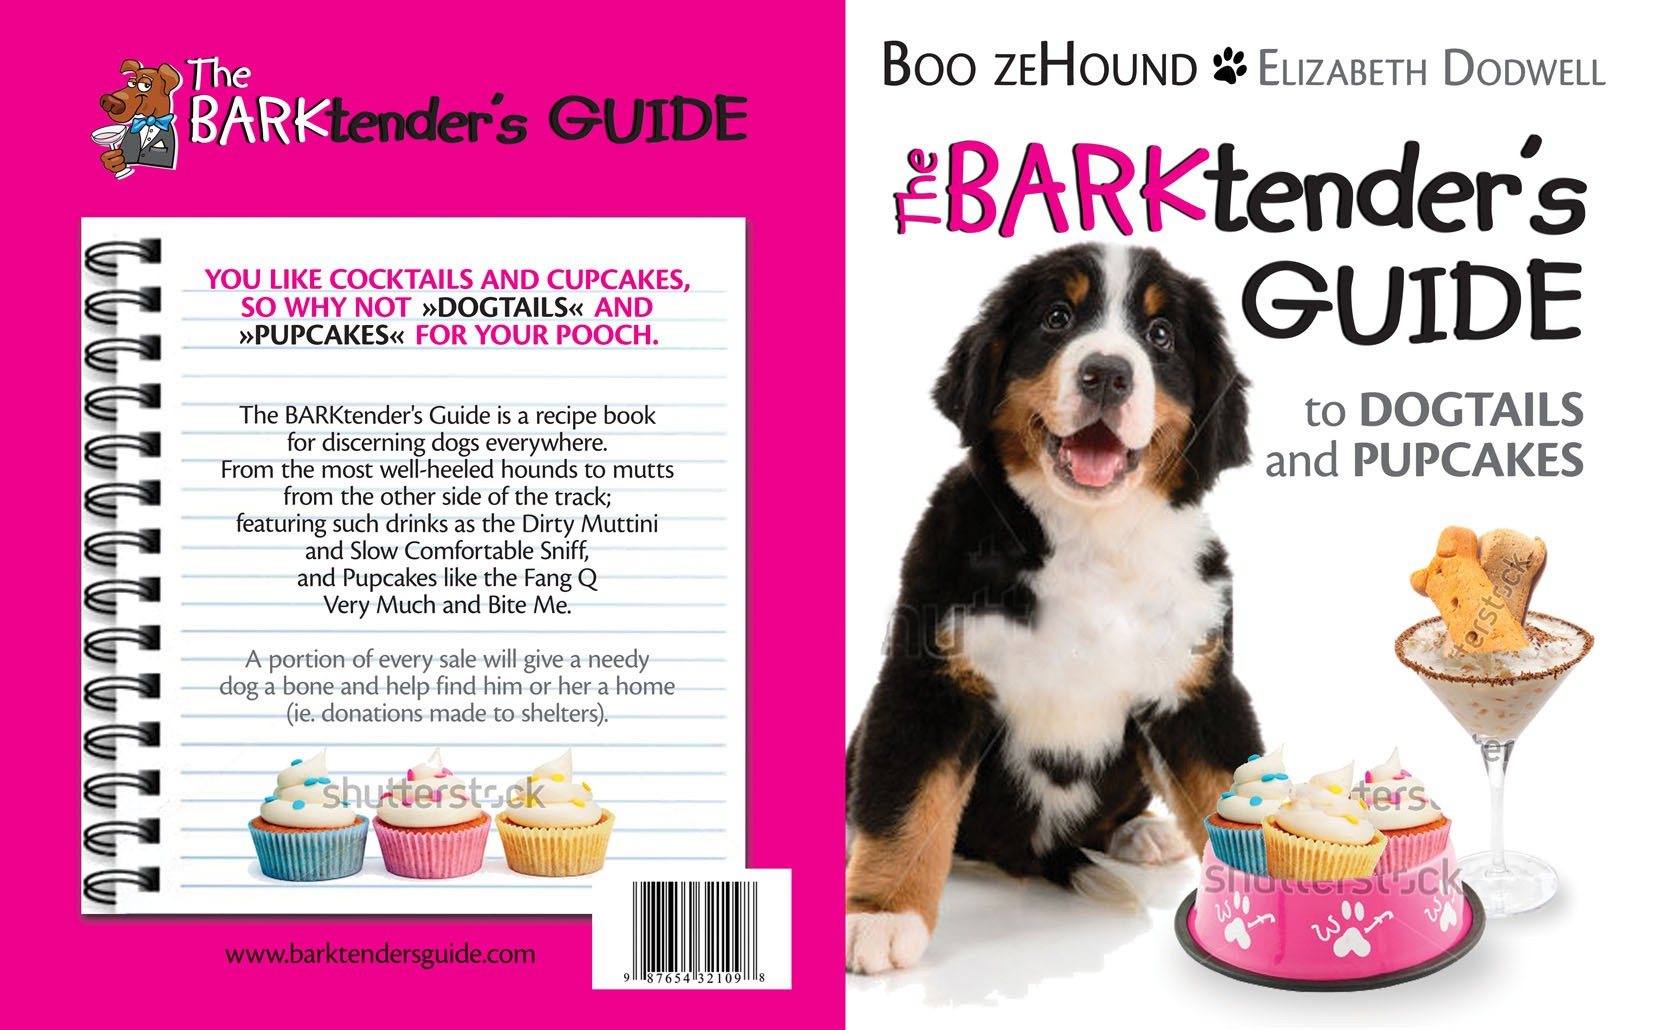 Create the next book or magazine cover for The BARKtender's Guide LLC